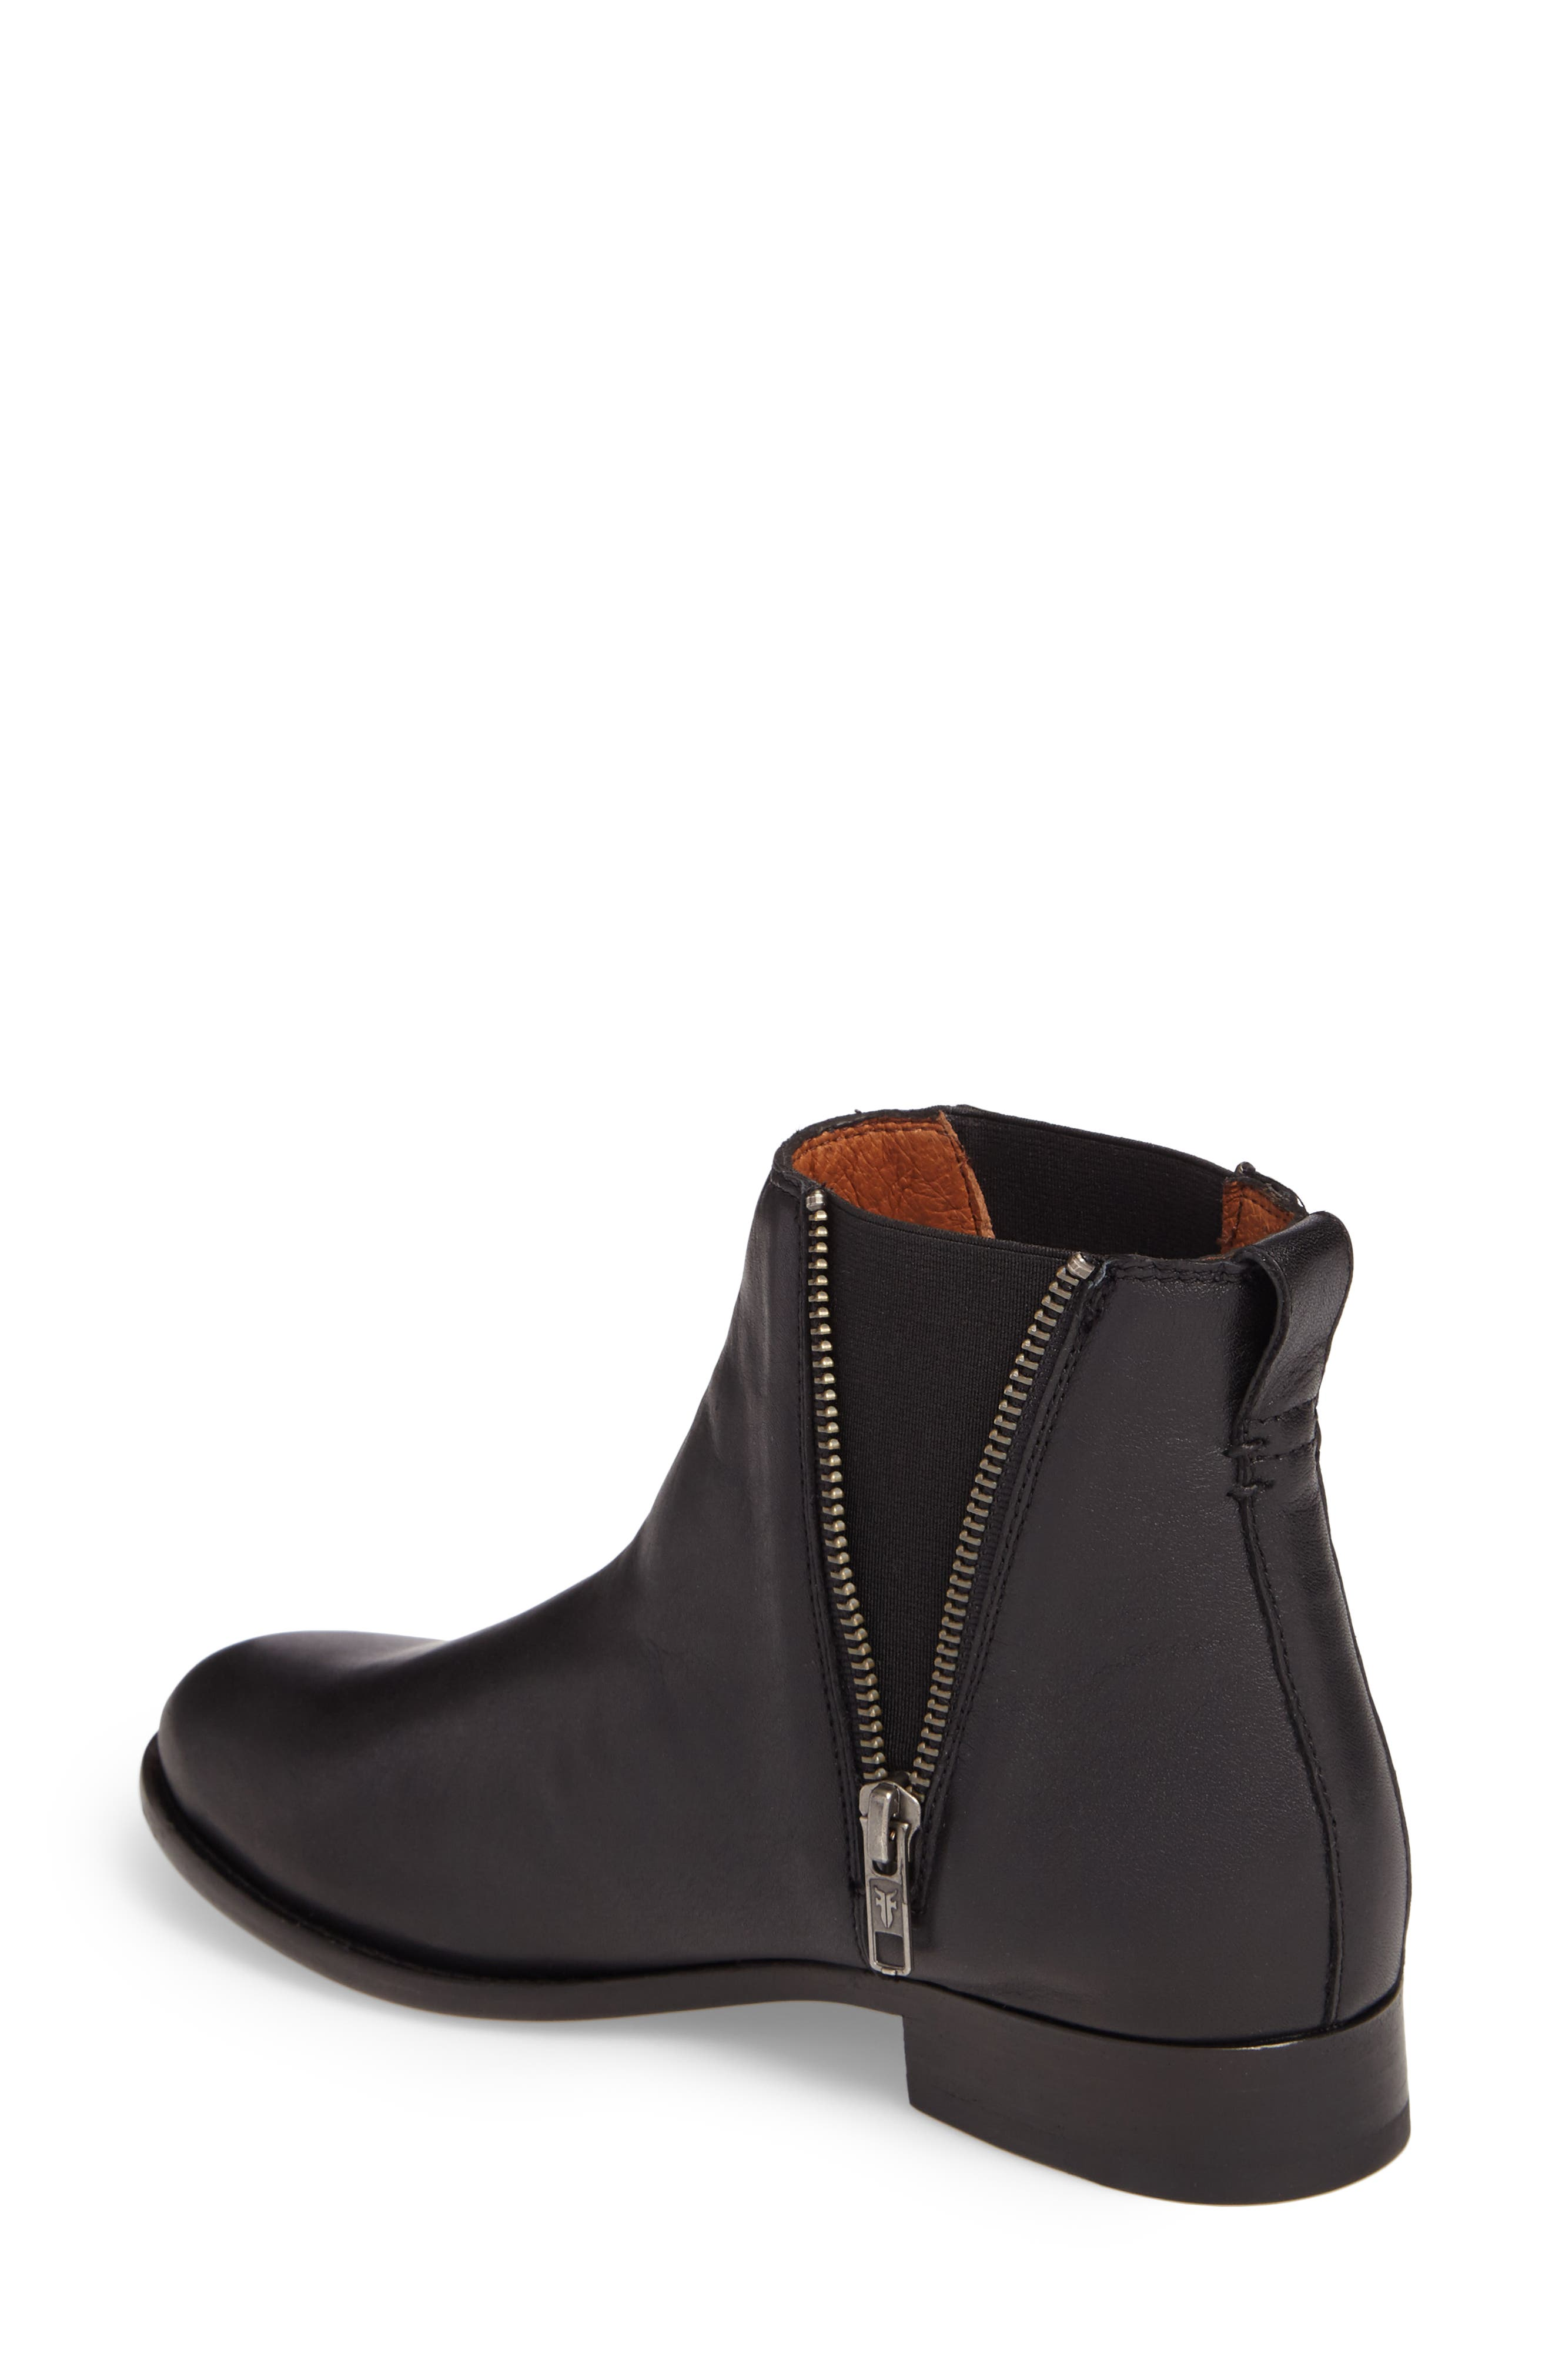 Carly Chelsea Boot,                             Alternate thumbnail 2, color,                             BLACK LEATHER